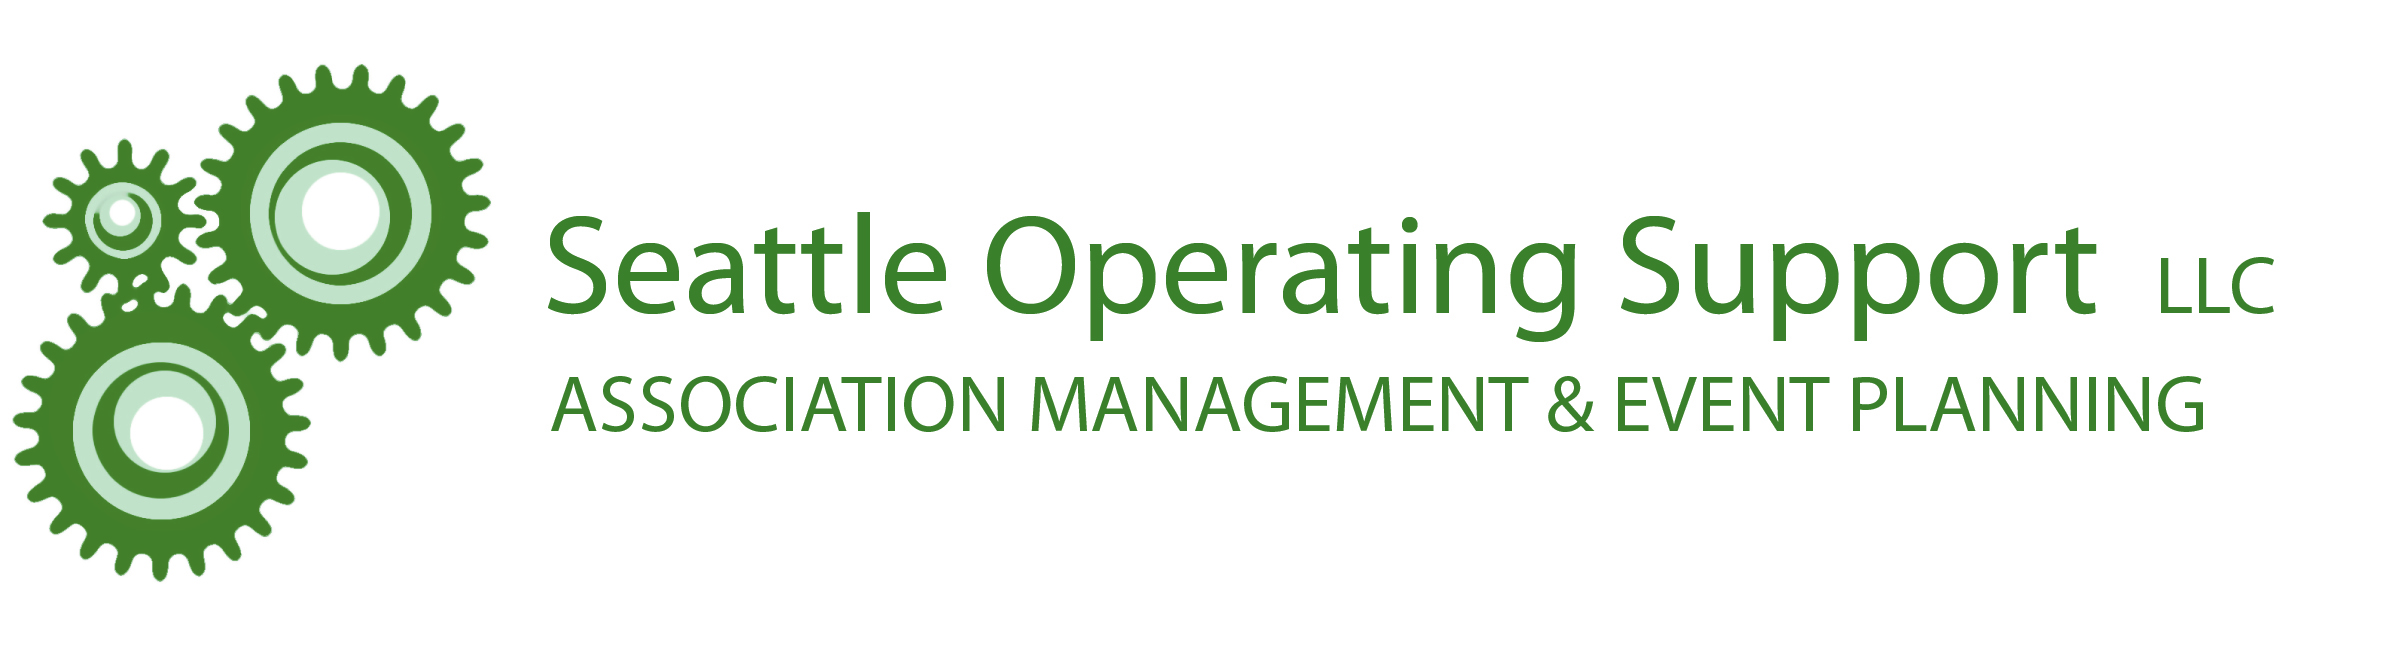 Seattle Operating Support, LLC